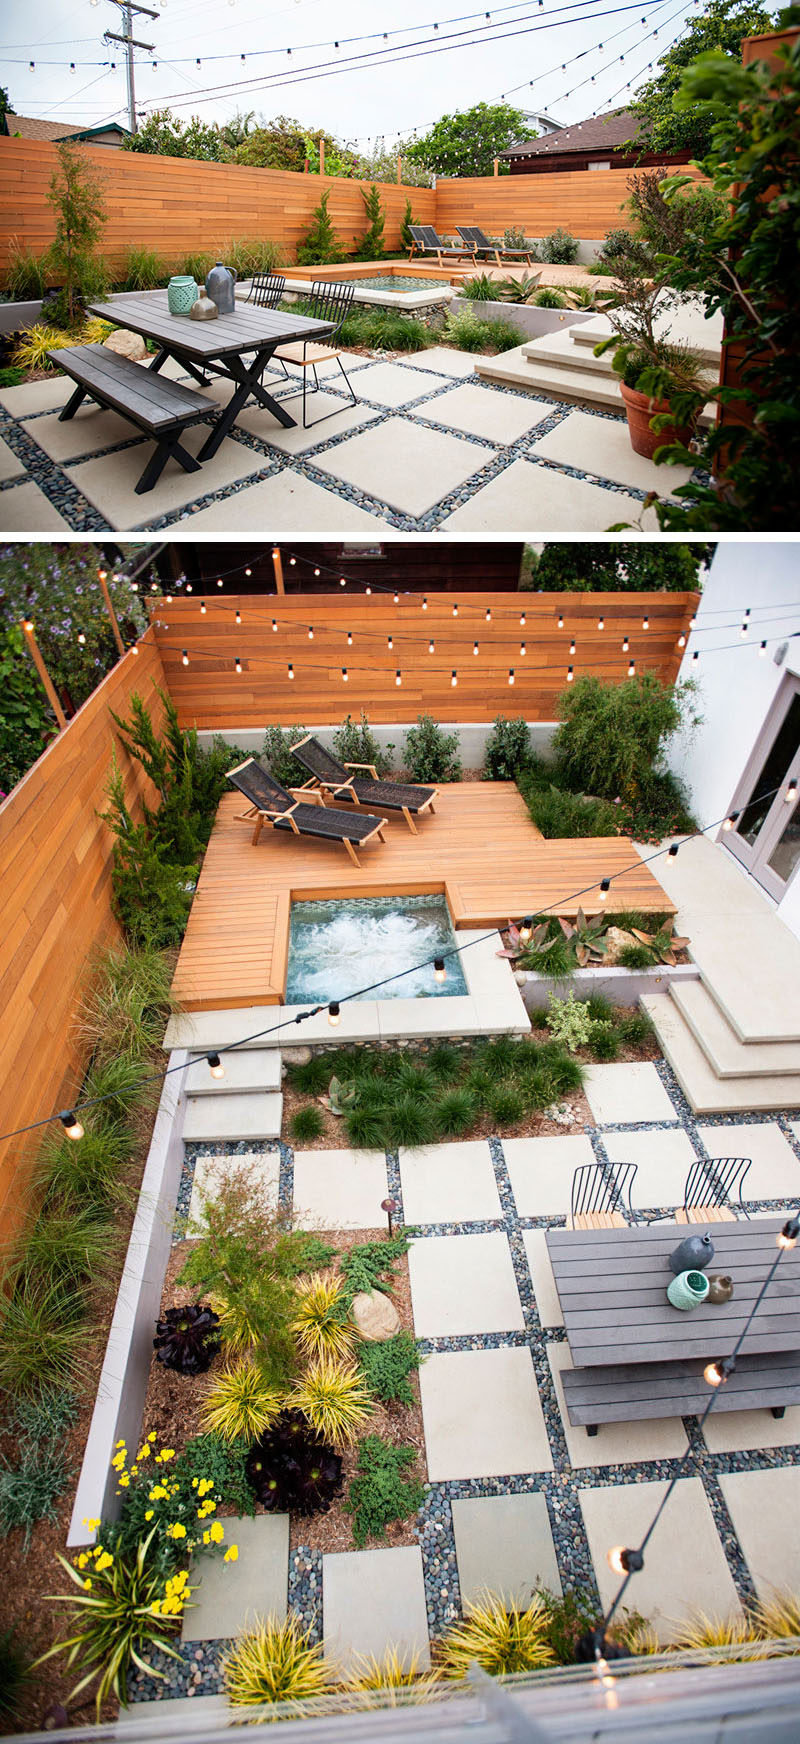 Landscaping Design Ideas - 11 Backyards Designed For ... on master suite ideas for home, summer for home, library ideas for home, halloween ideas for home, storage ideas for home, carpet ideas for home, fire pit for home, birthday ideas for home, plants ideas for home, spas for home, craft ideas for home, landscaping for home, fall ideas for home, backyard thanksgiving, room ideas for home, retaining walls for home, den ideas for home, office ideas for home, backyard inspirations, gardening for home,